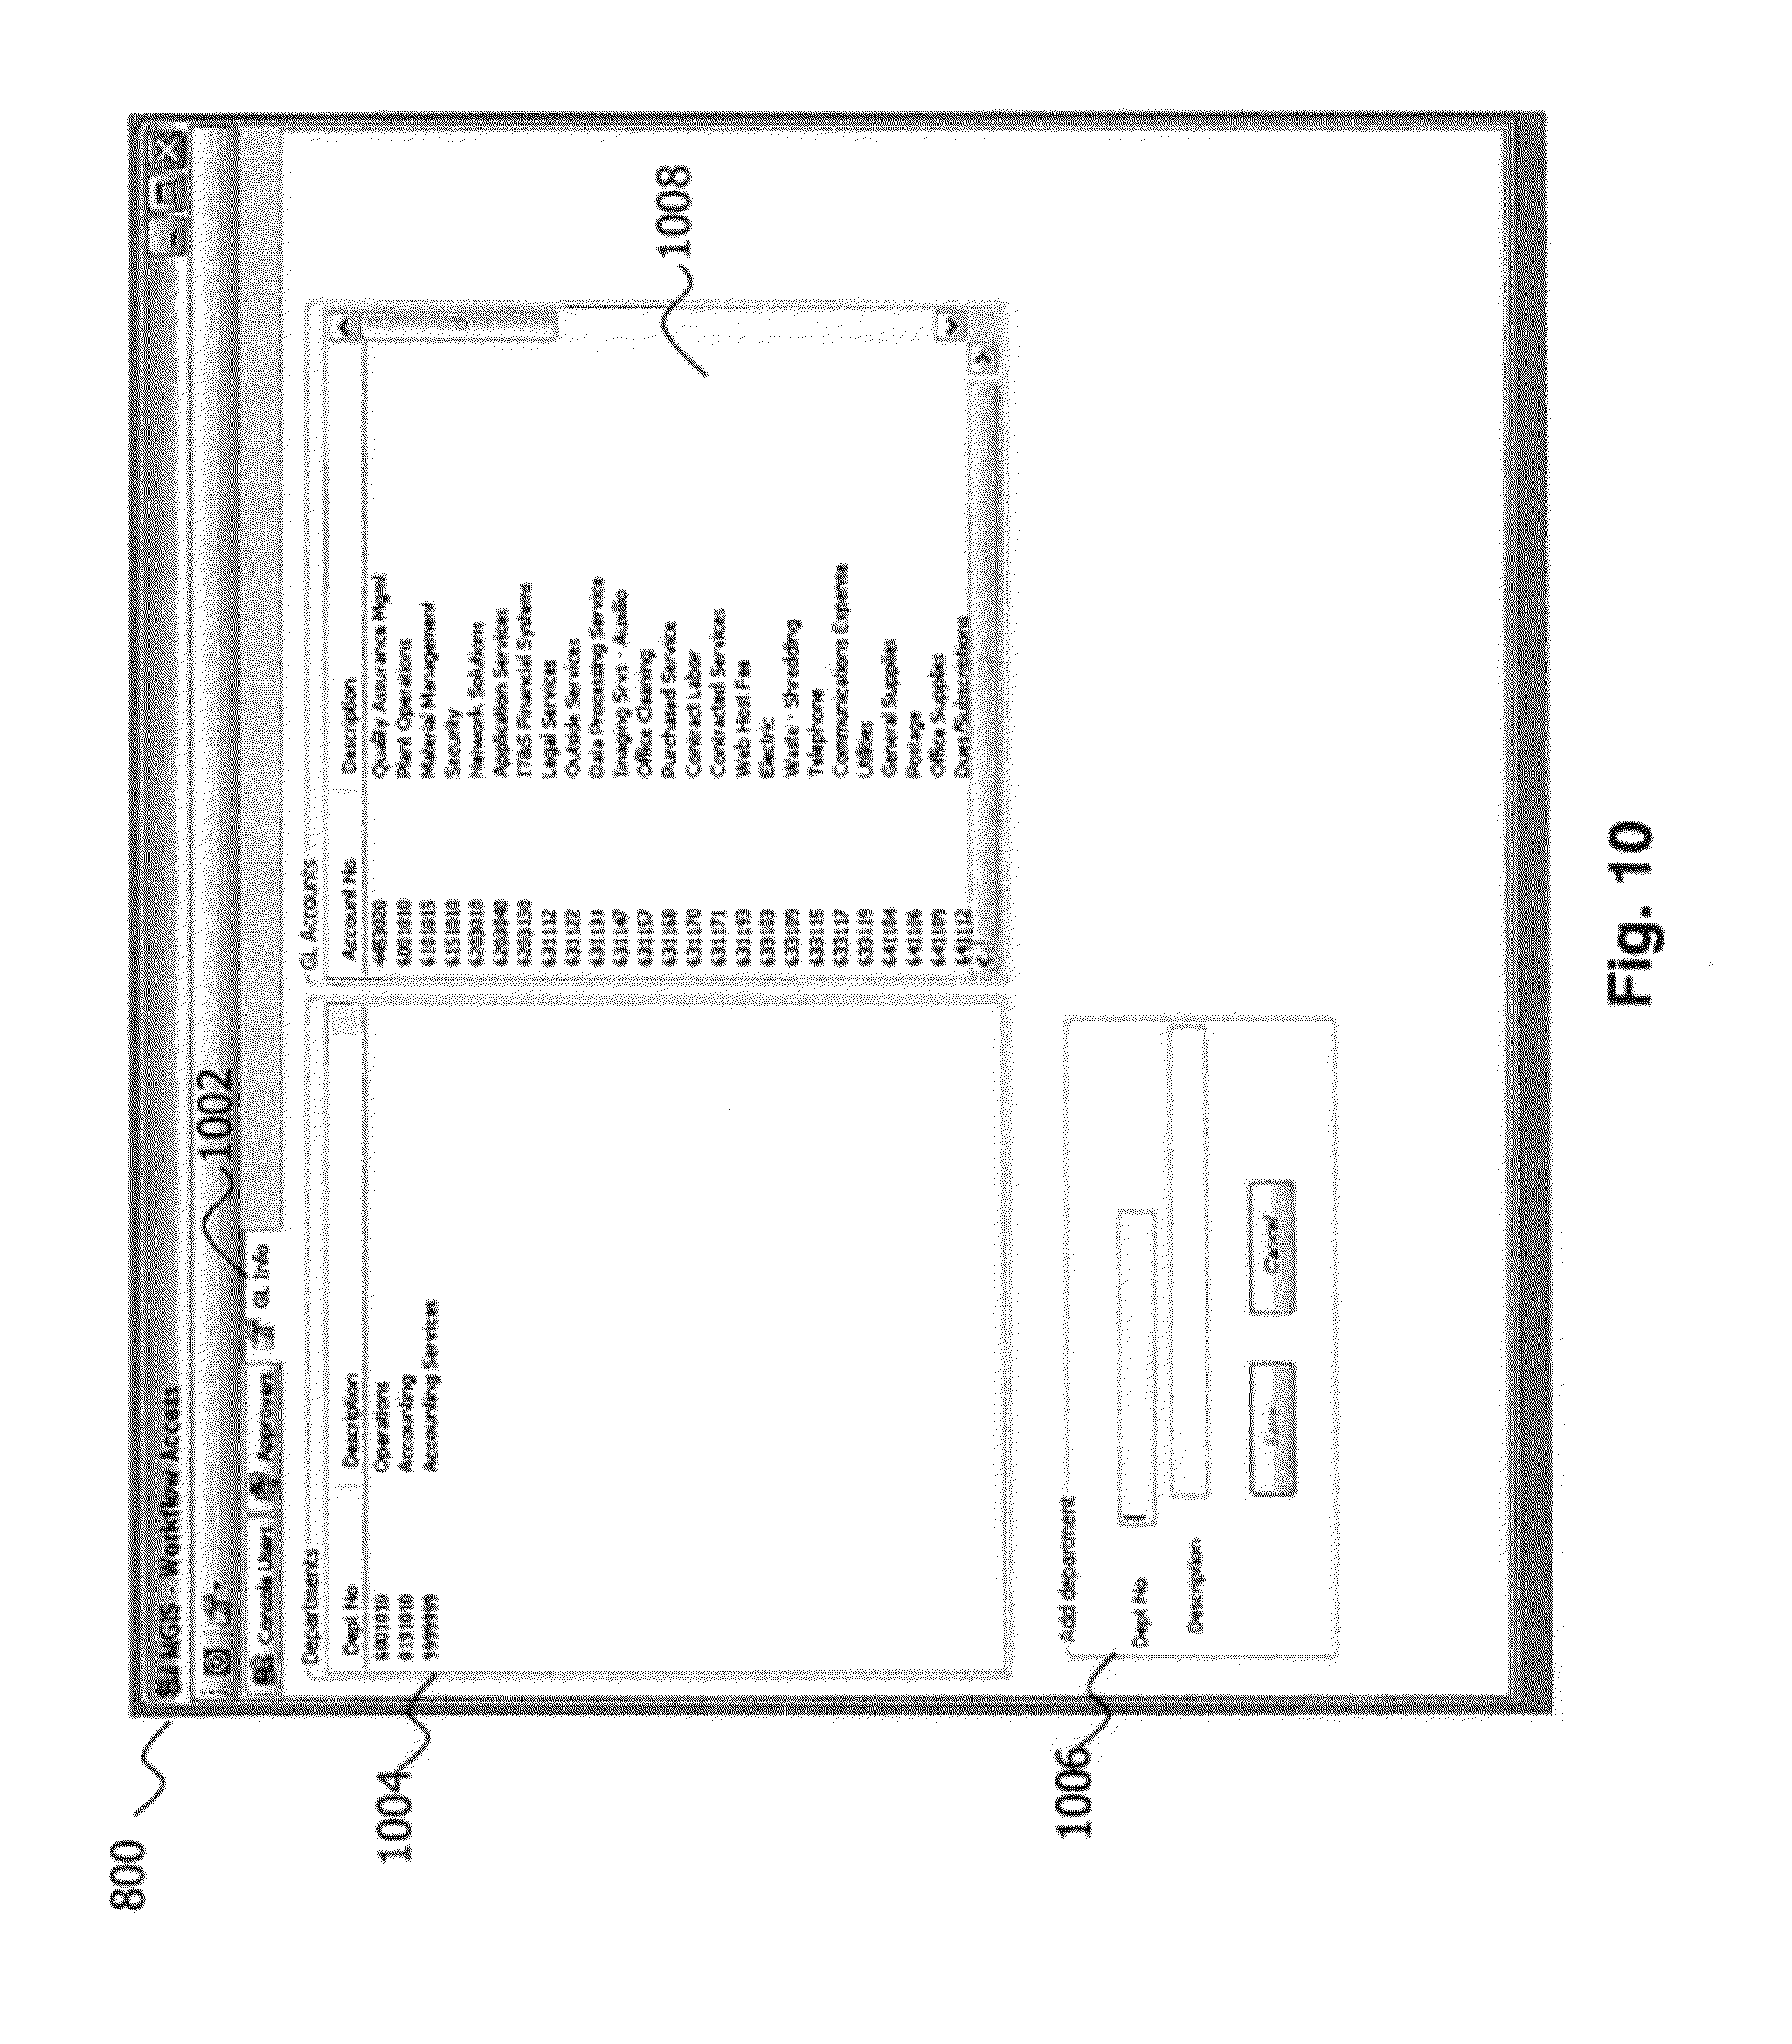 Business Card And Receipt Scanner Pdf Patent Us  Automated Invoice Processing Software And  Sample Acknowledgement Receipt Excel with Invoice Database Design Word Patent Drawing Child Care Tax Receipt Excel